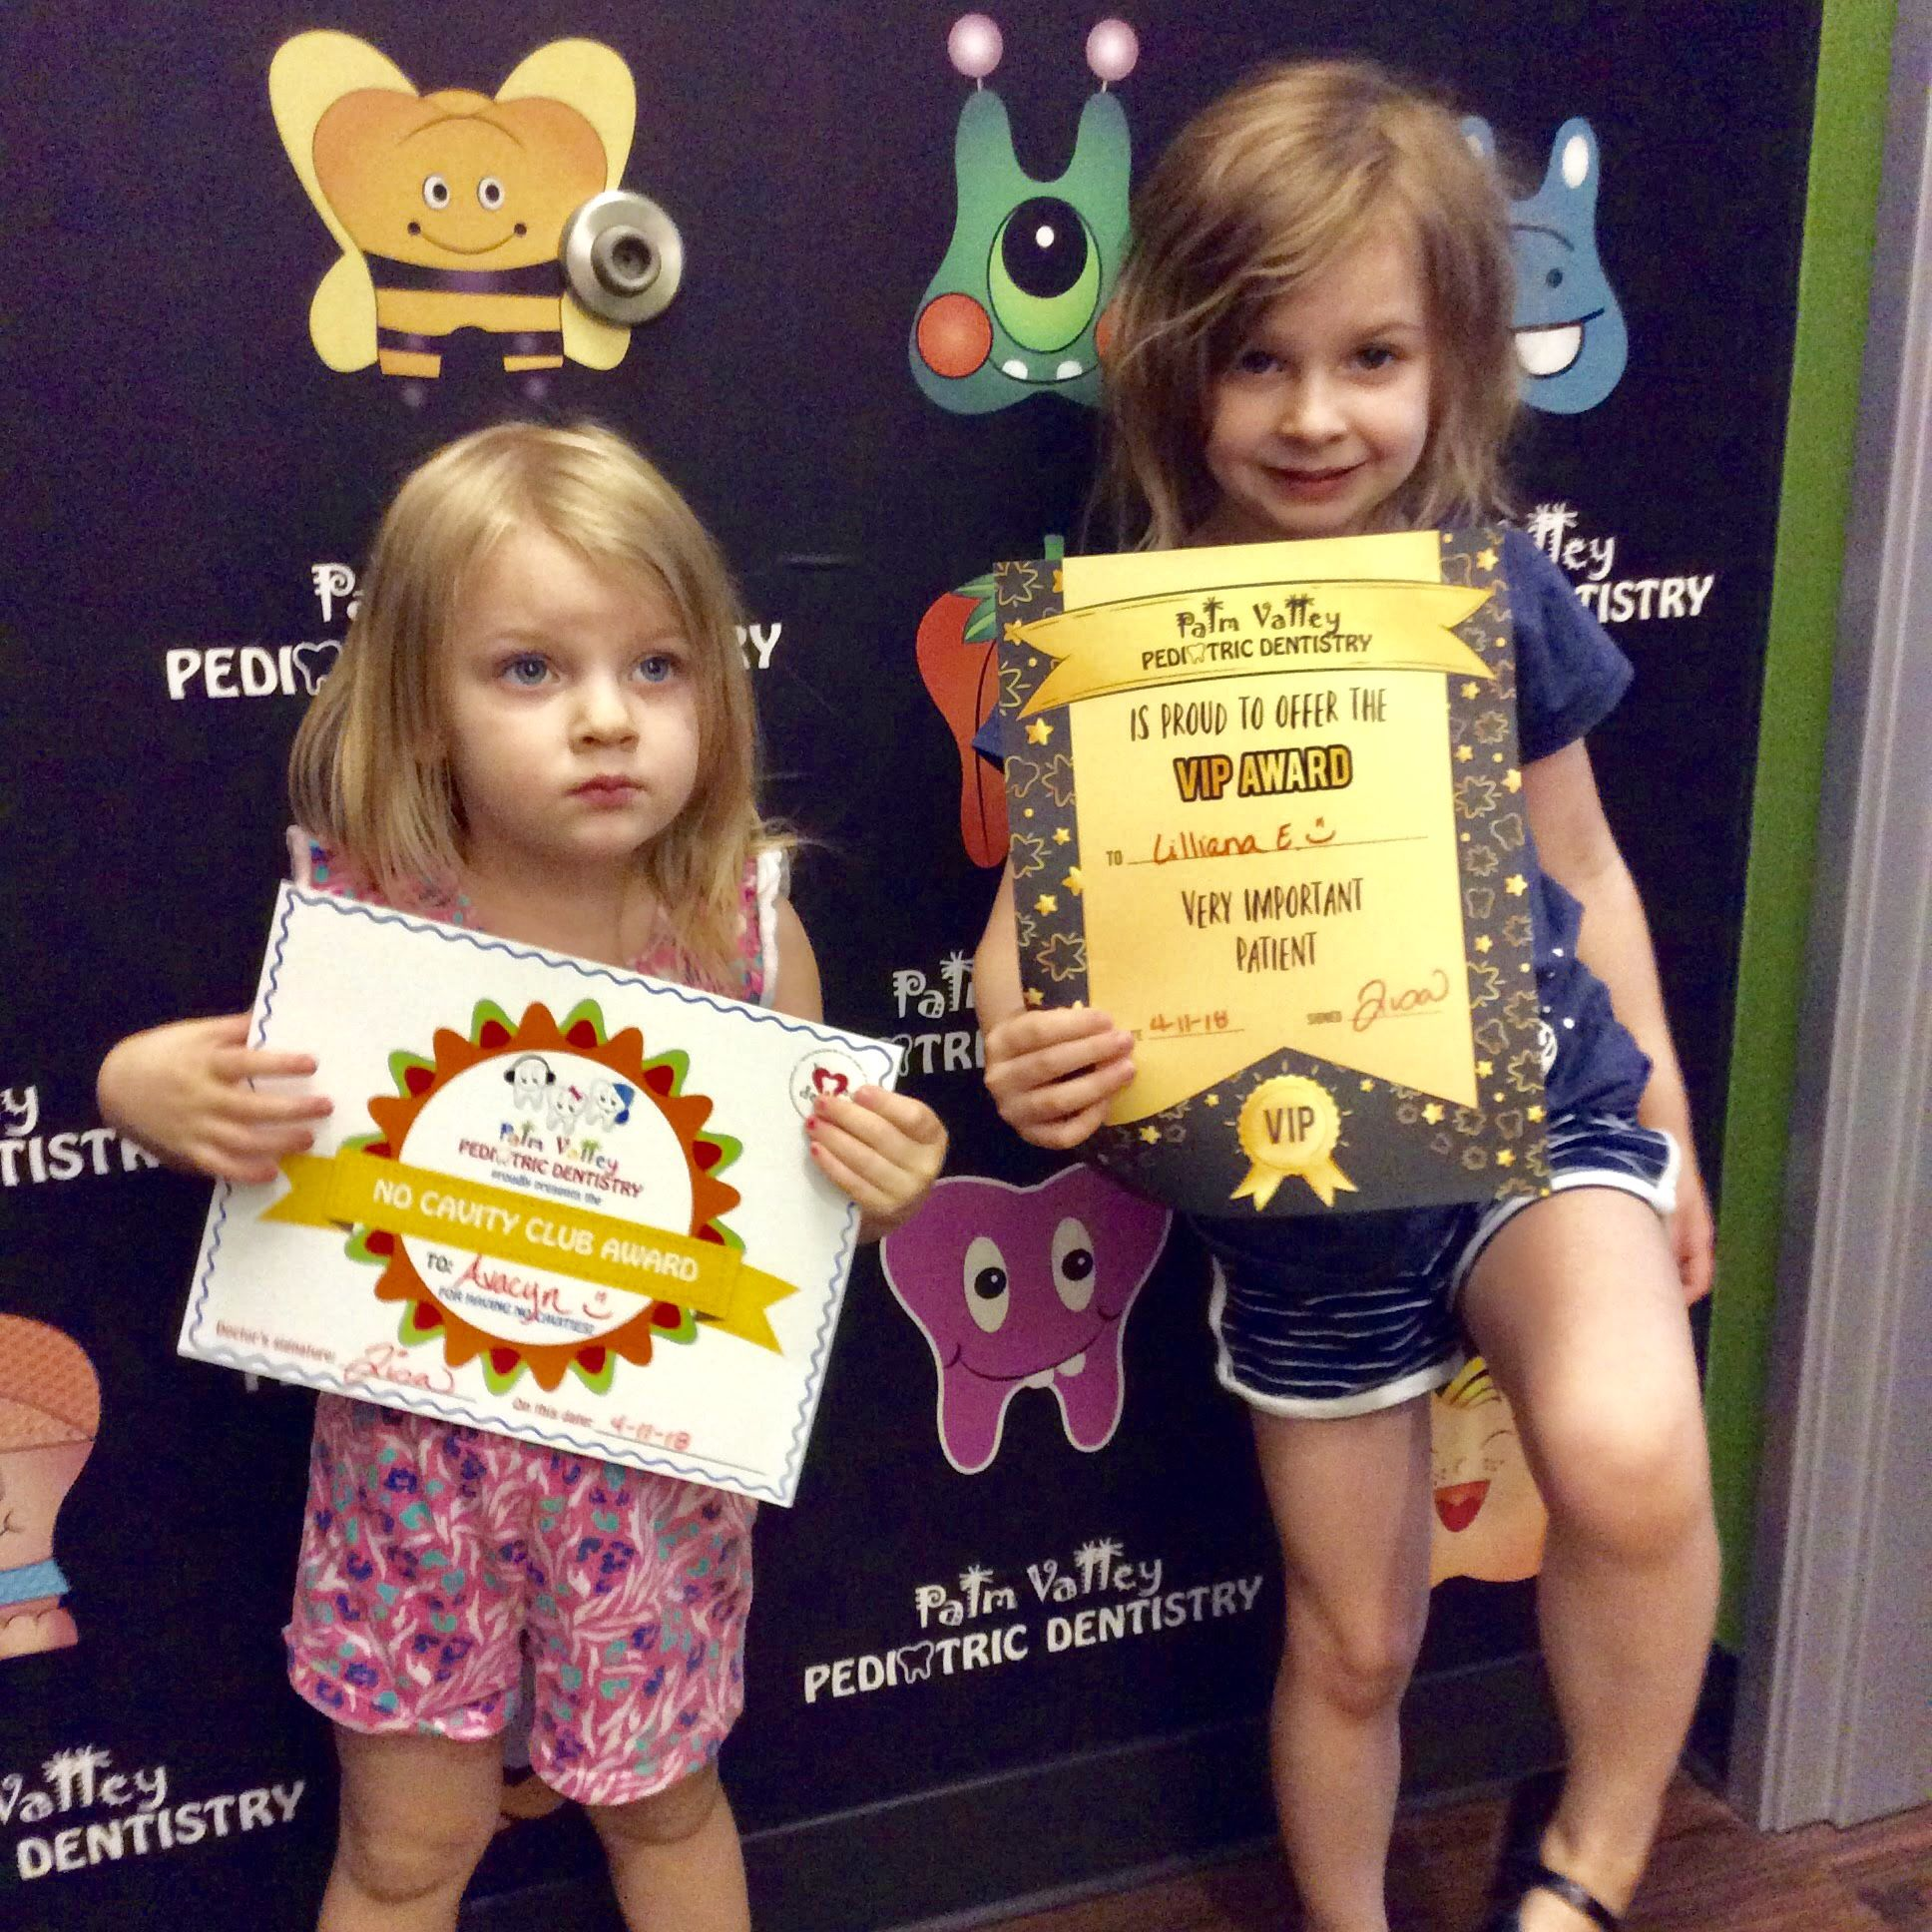 At pvpd palm valley pediatric dentistry our goal is to